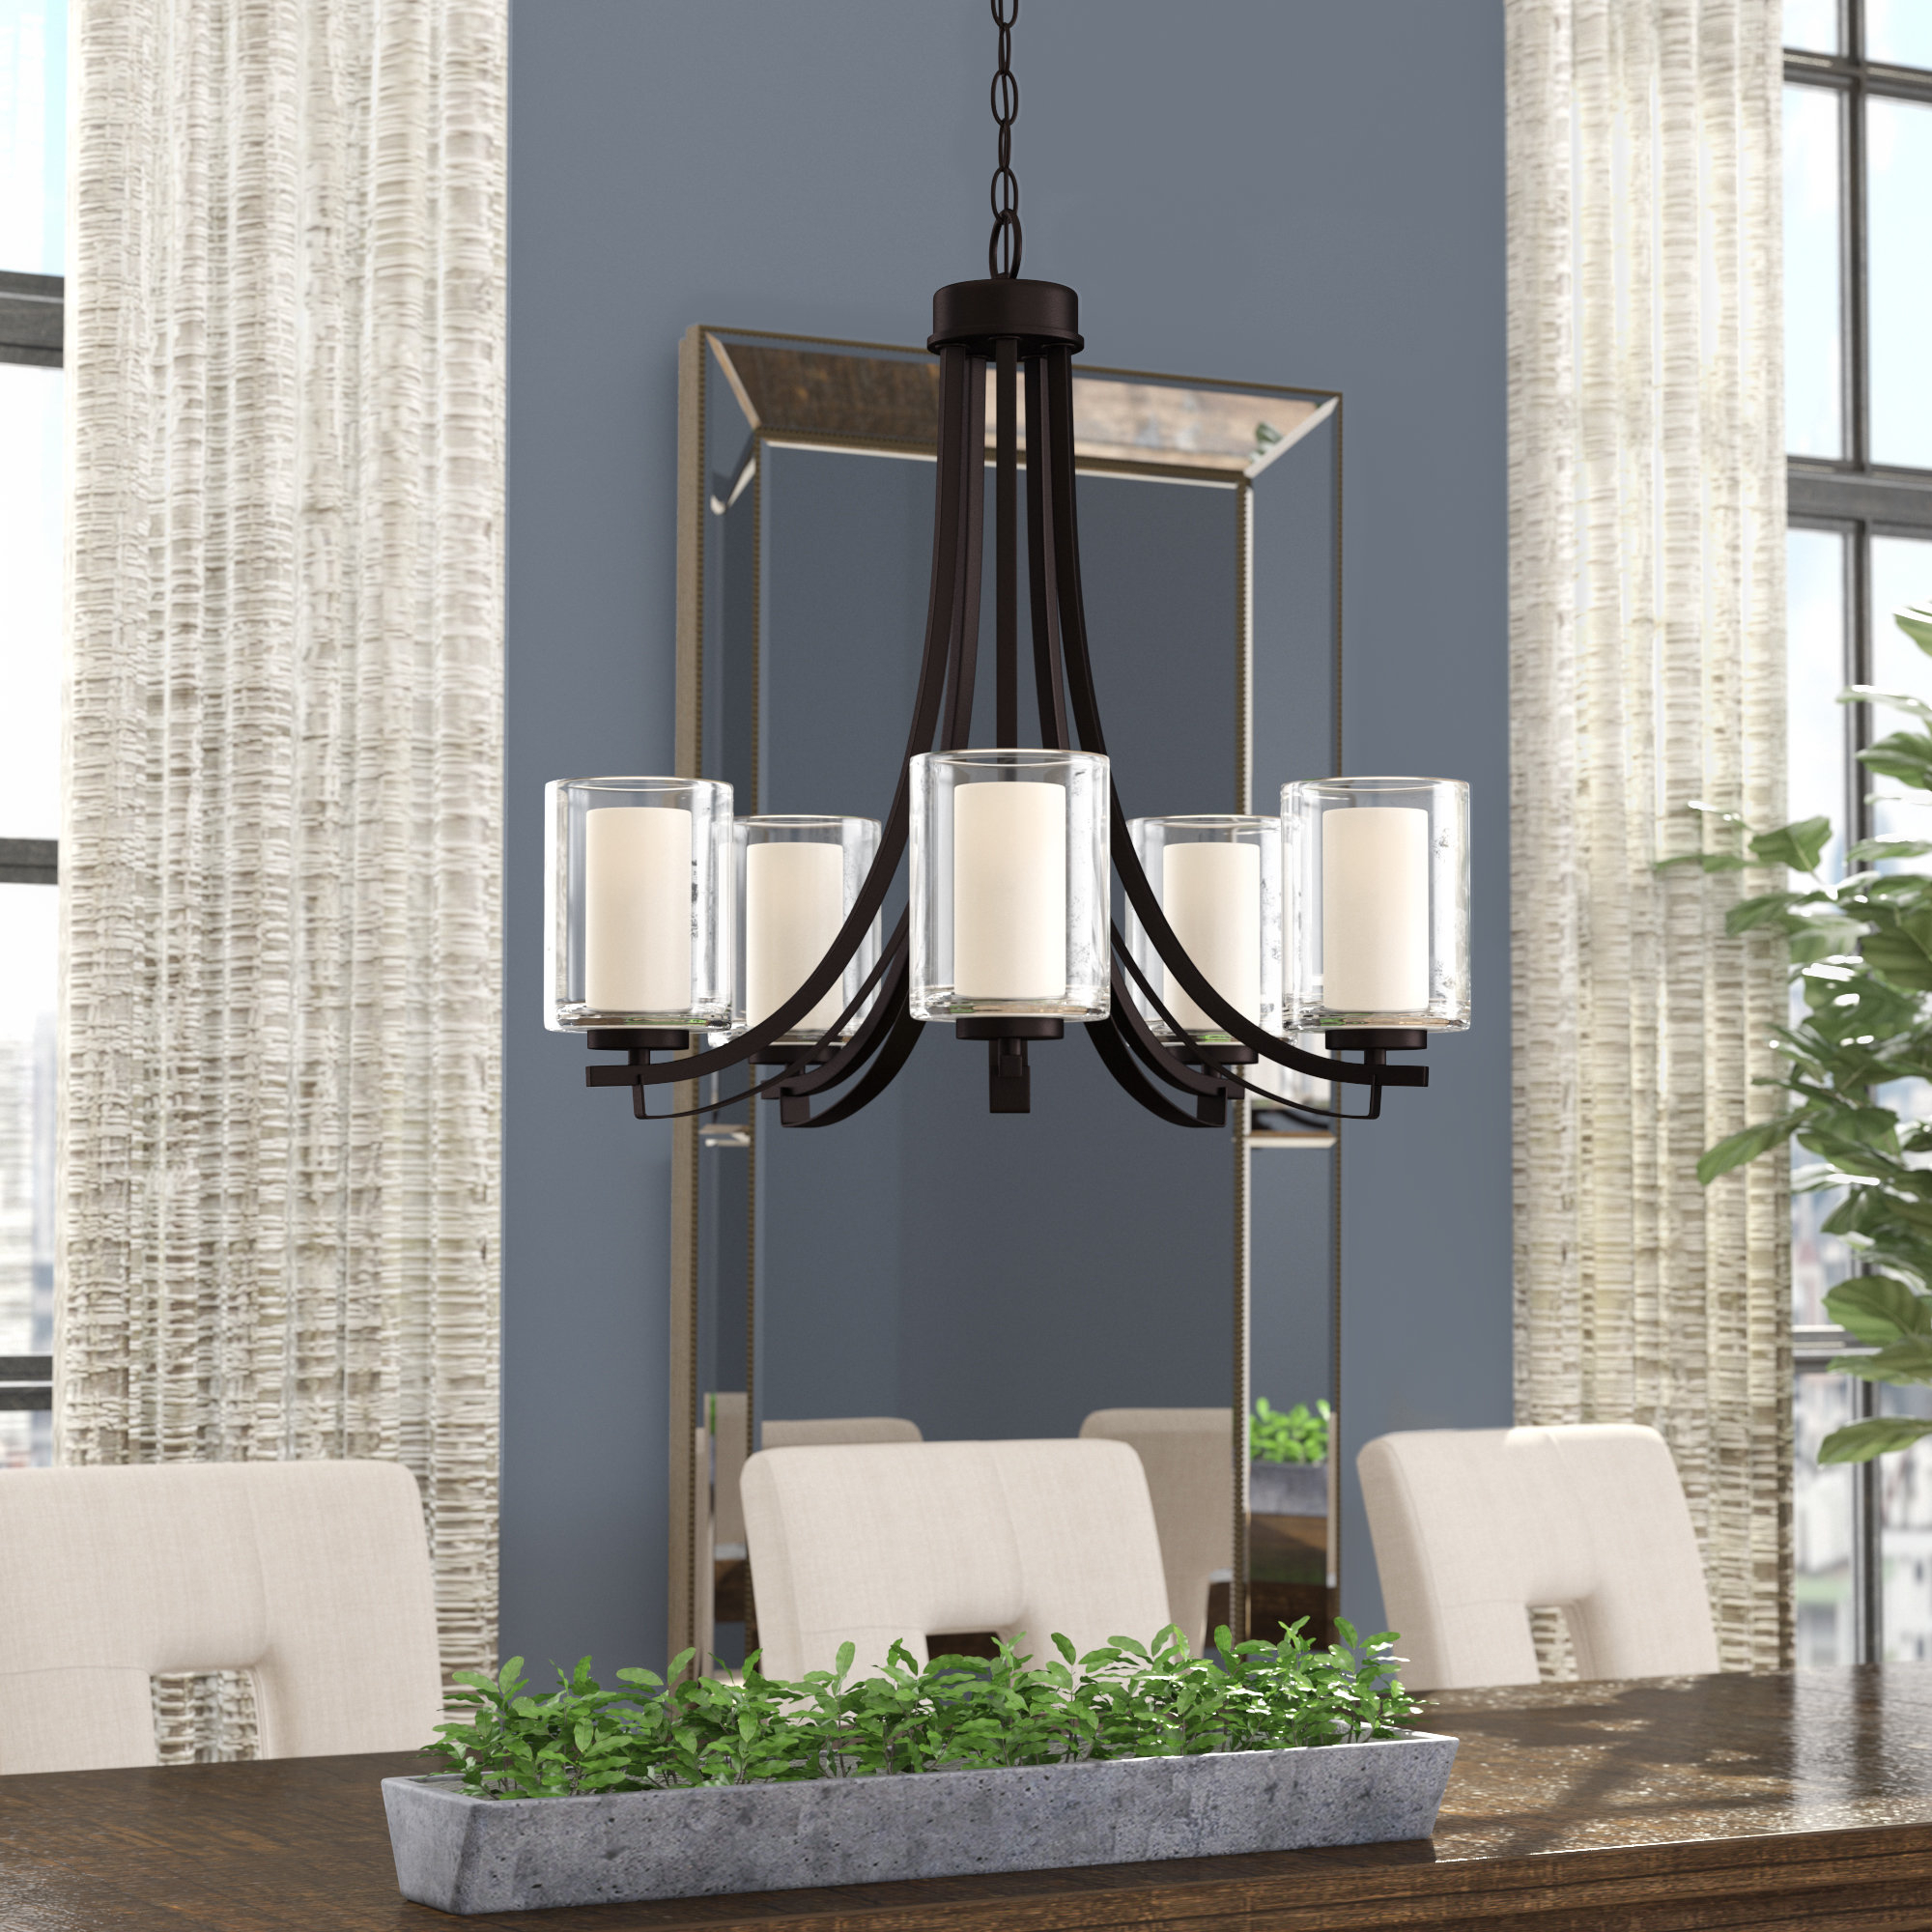 Suki 5 Light Shaded Chandelier | Wayfair With Regard To Suki 5 Light Shaded Chandeliers (View 22 of 30)